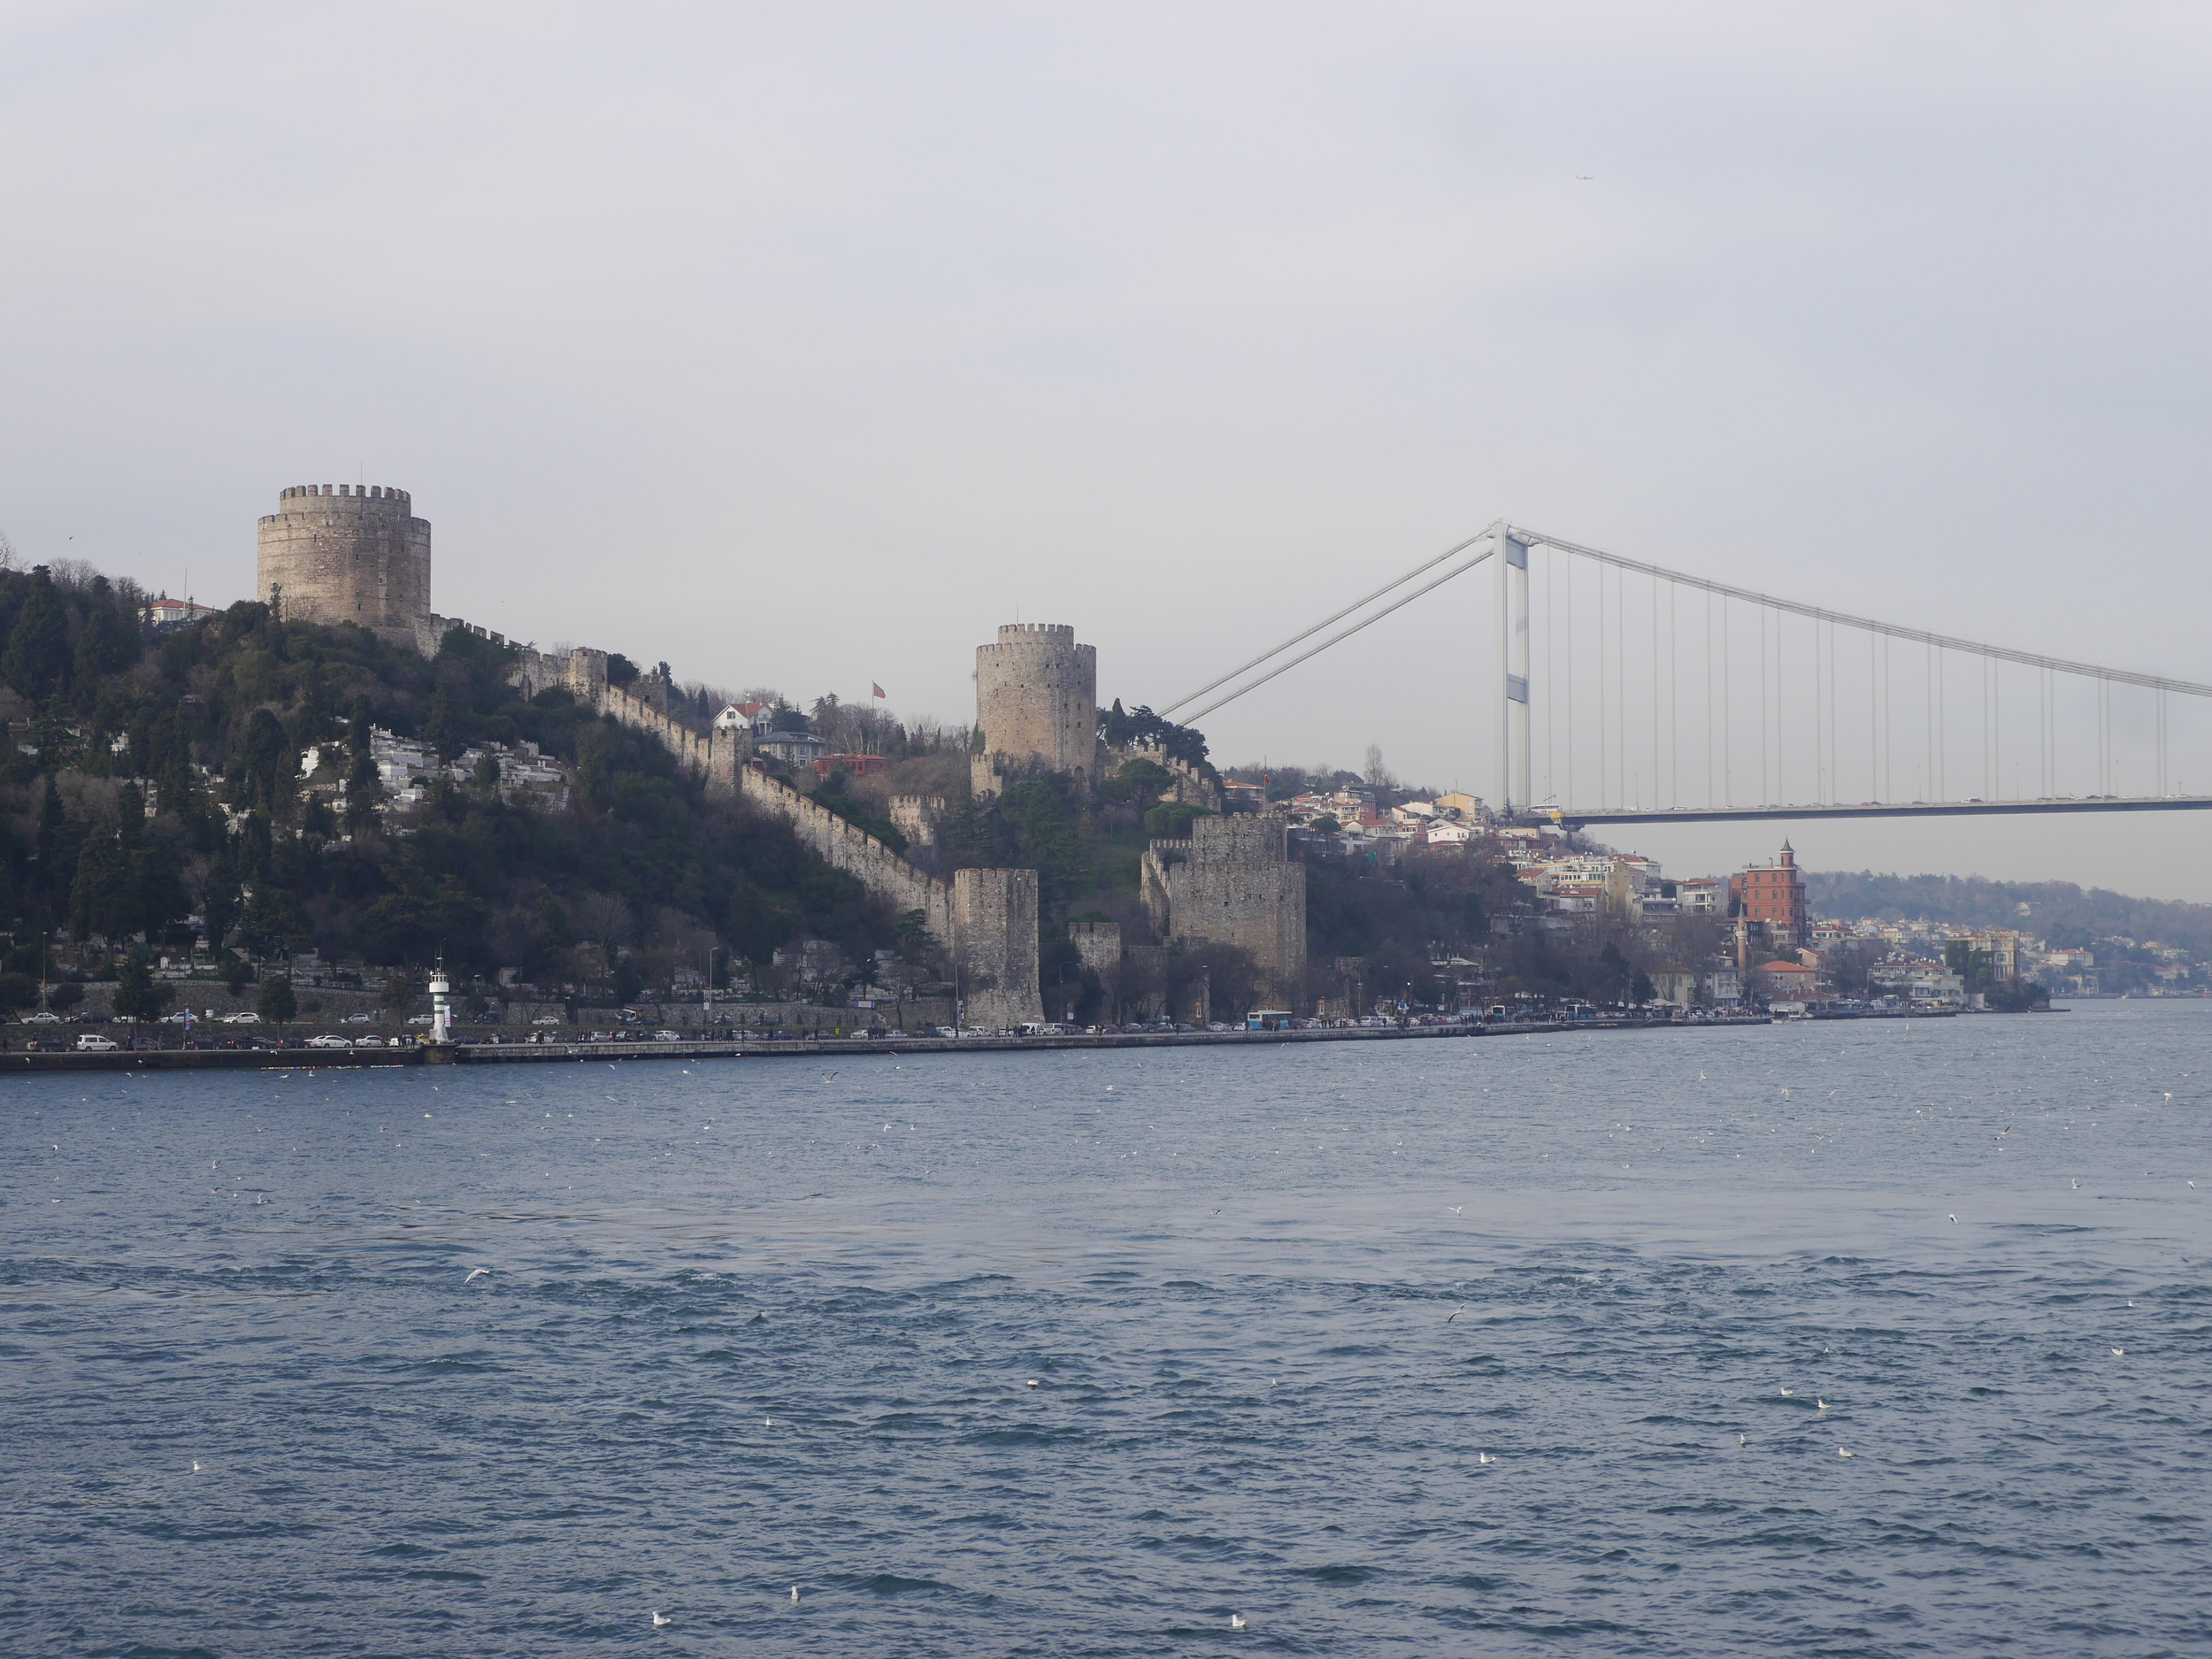 The  Rumelishisari , a fortress constructed between 1451 and 1452, flanked by the  Faith Sultan Mehmet Bridge , completed in 1988 (the second of the only two bridges spanning the strait).